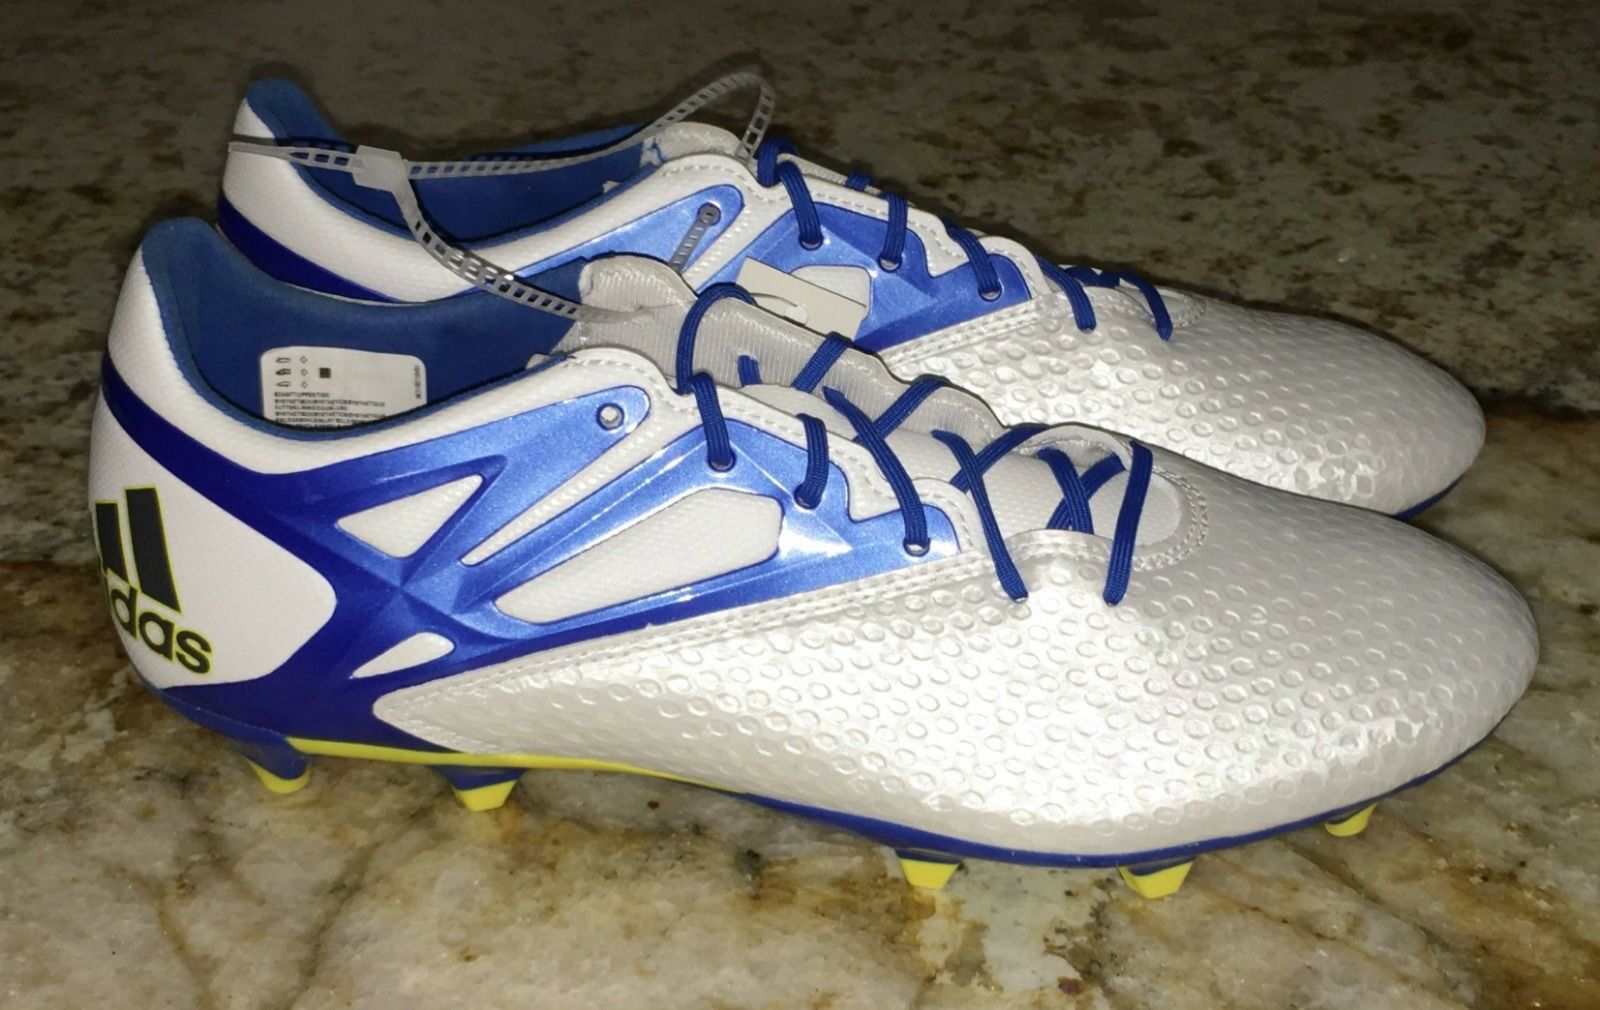 ADIDAS Messi 15.2 FG   AG Soccer Cleats Boots White bluee Black NEW Mens Sz 8.5